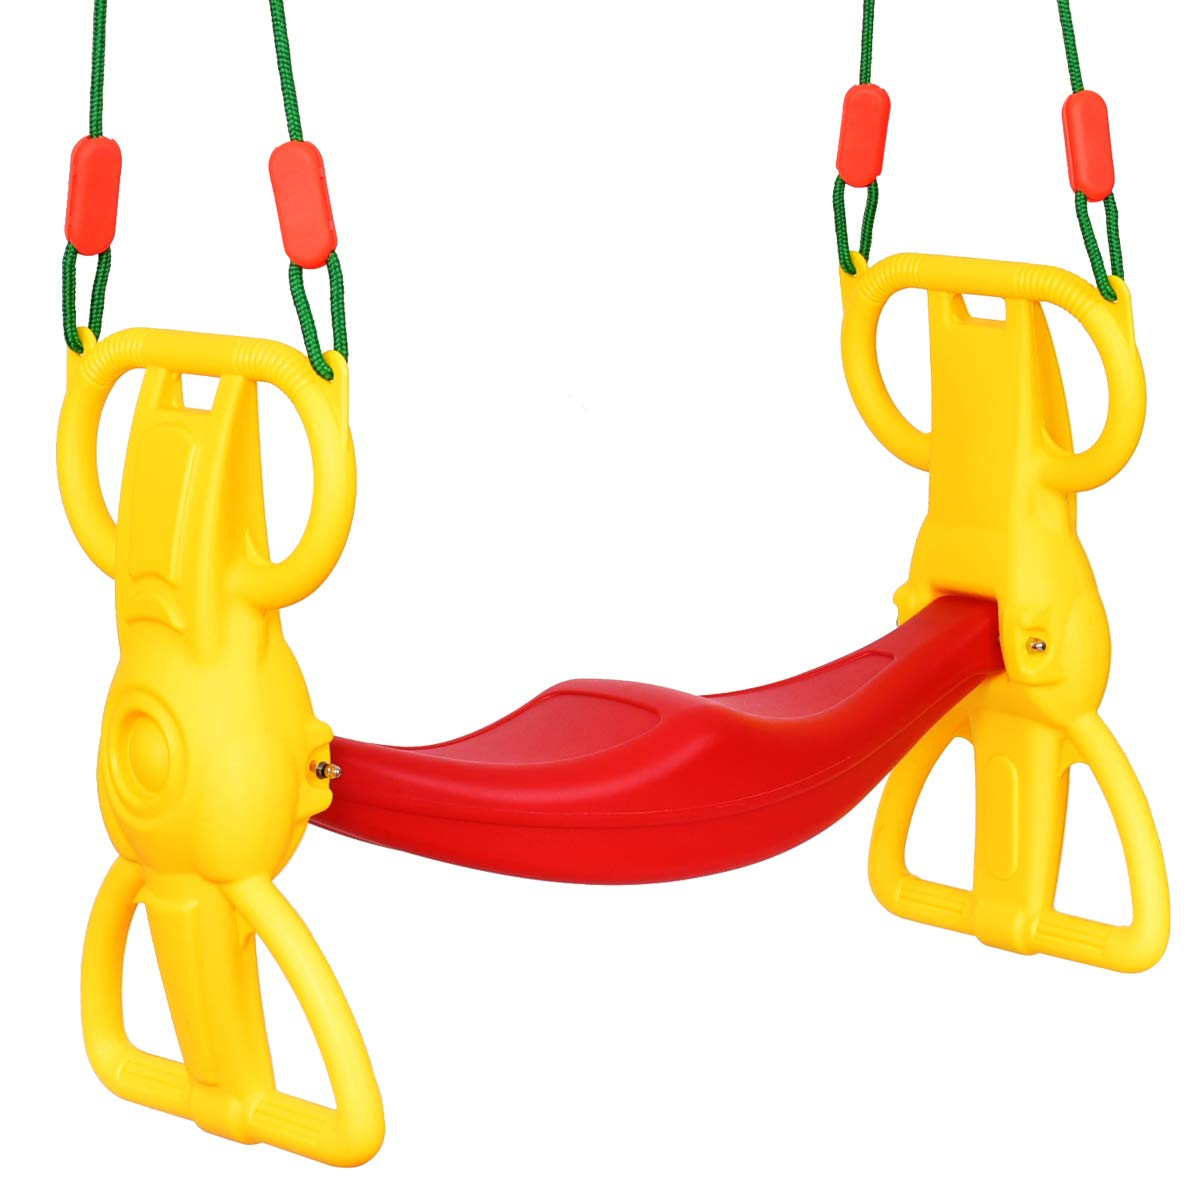 Costzon Rider Swing with Hangers, Wind Rider Glider Swing for Kids Playground (Back to Back Rider Swing for 2 Kids) by Costzon